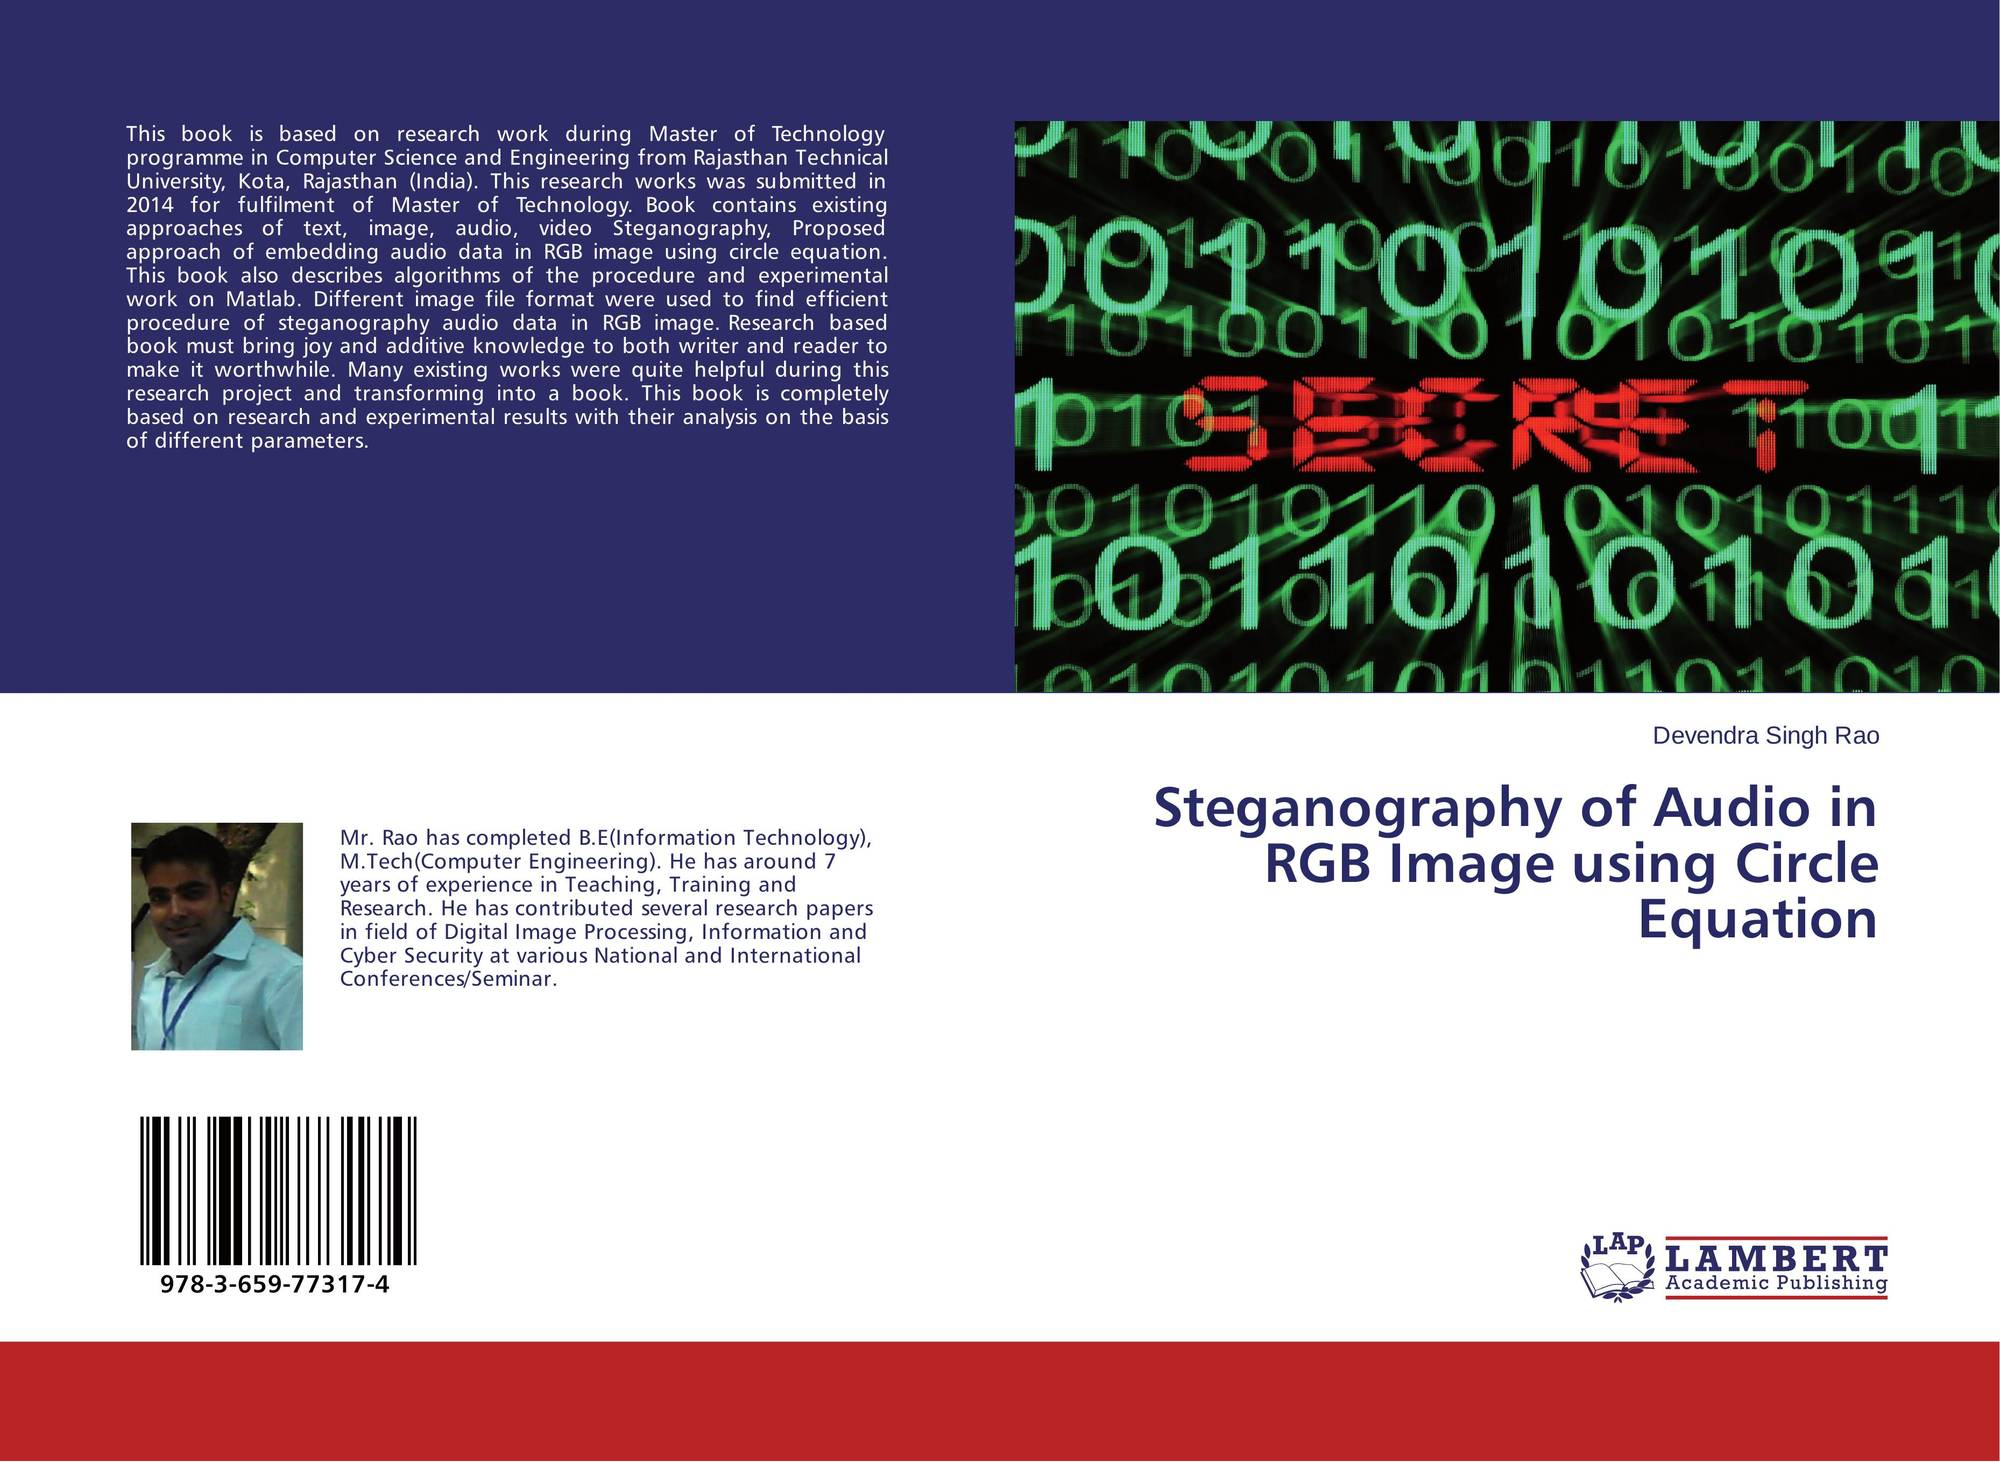 the types and techniques of steganography computer science essay Survey paper on steganography computer science and engineering this paper is completed by referring various research papers on steganography techniques and.